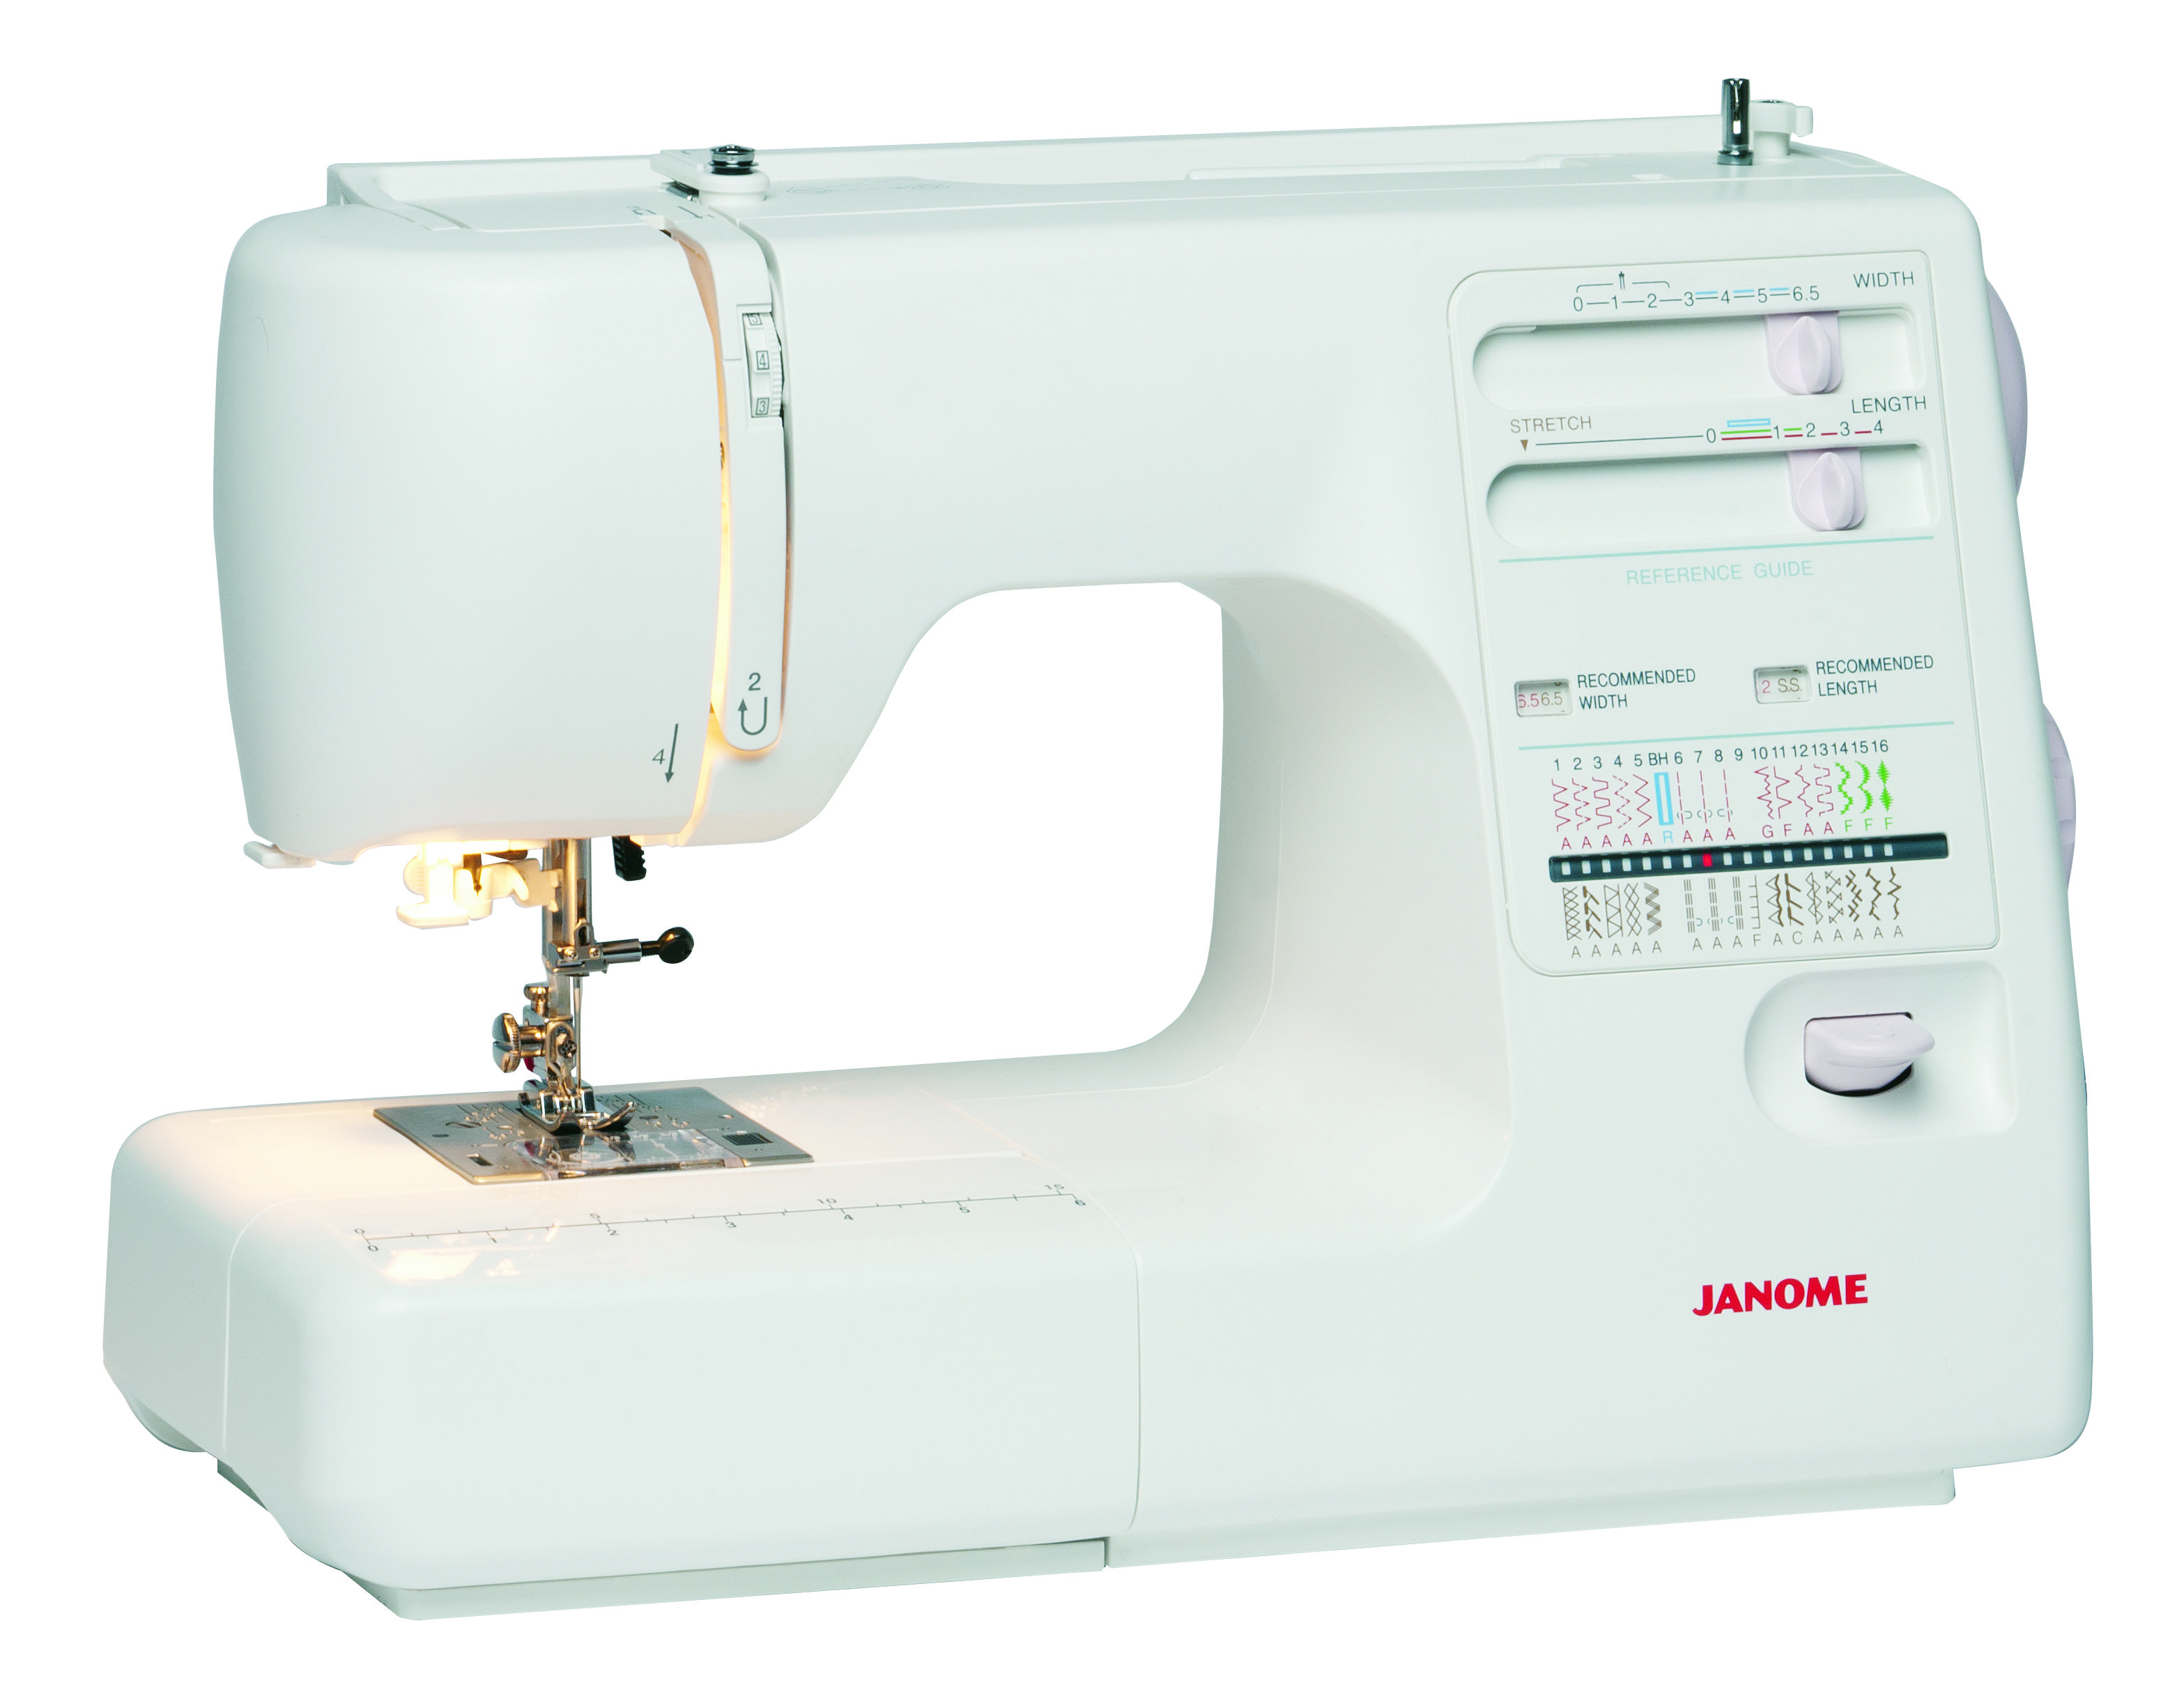 The Janome MS5027LE is an ergonomically-designed model with SFS Superior  Feed System - for